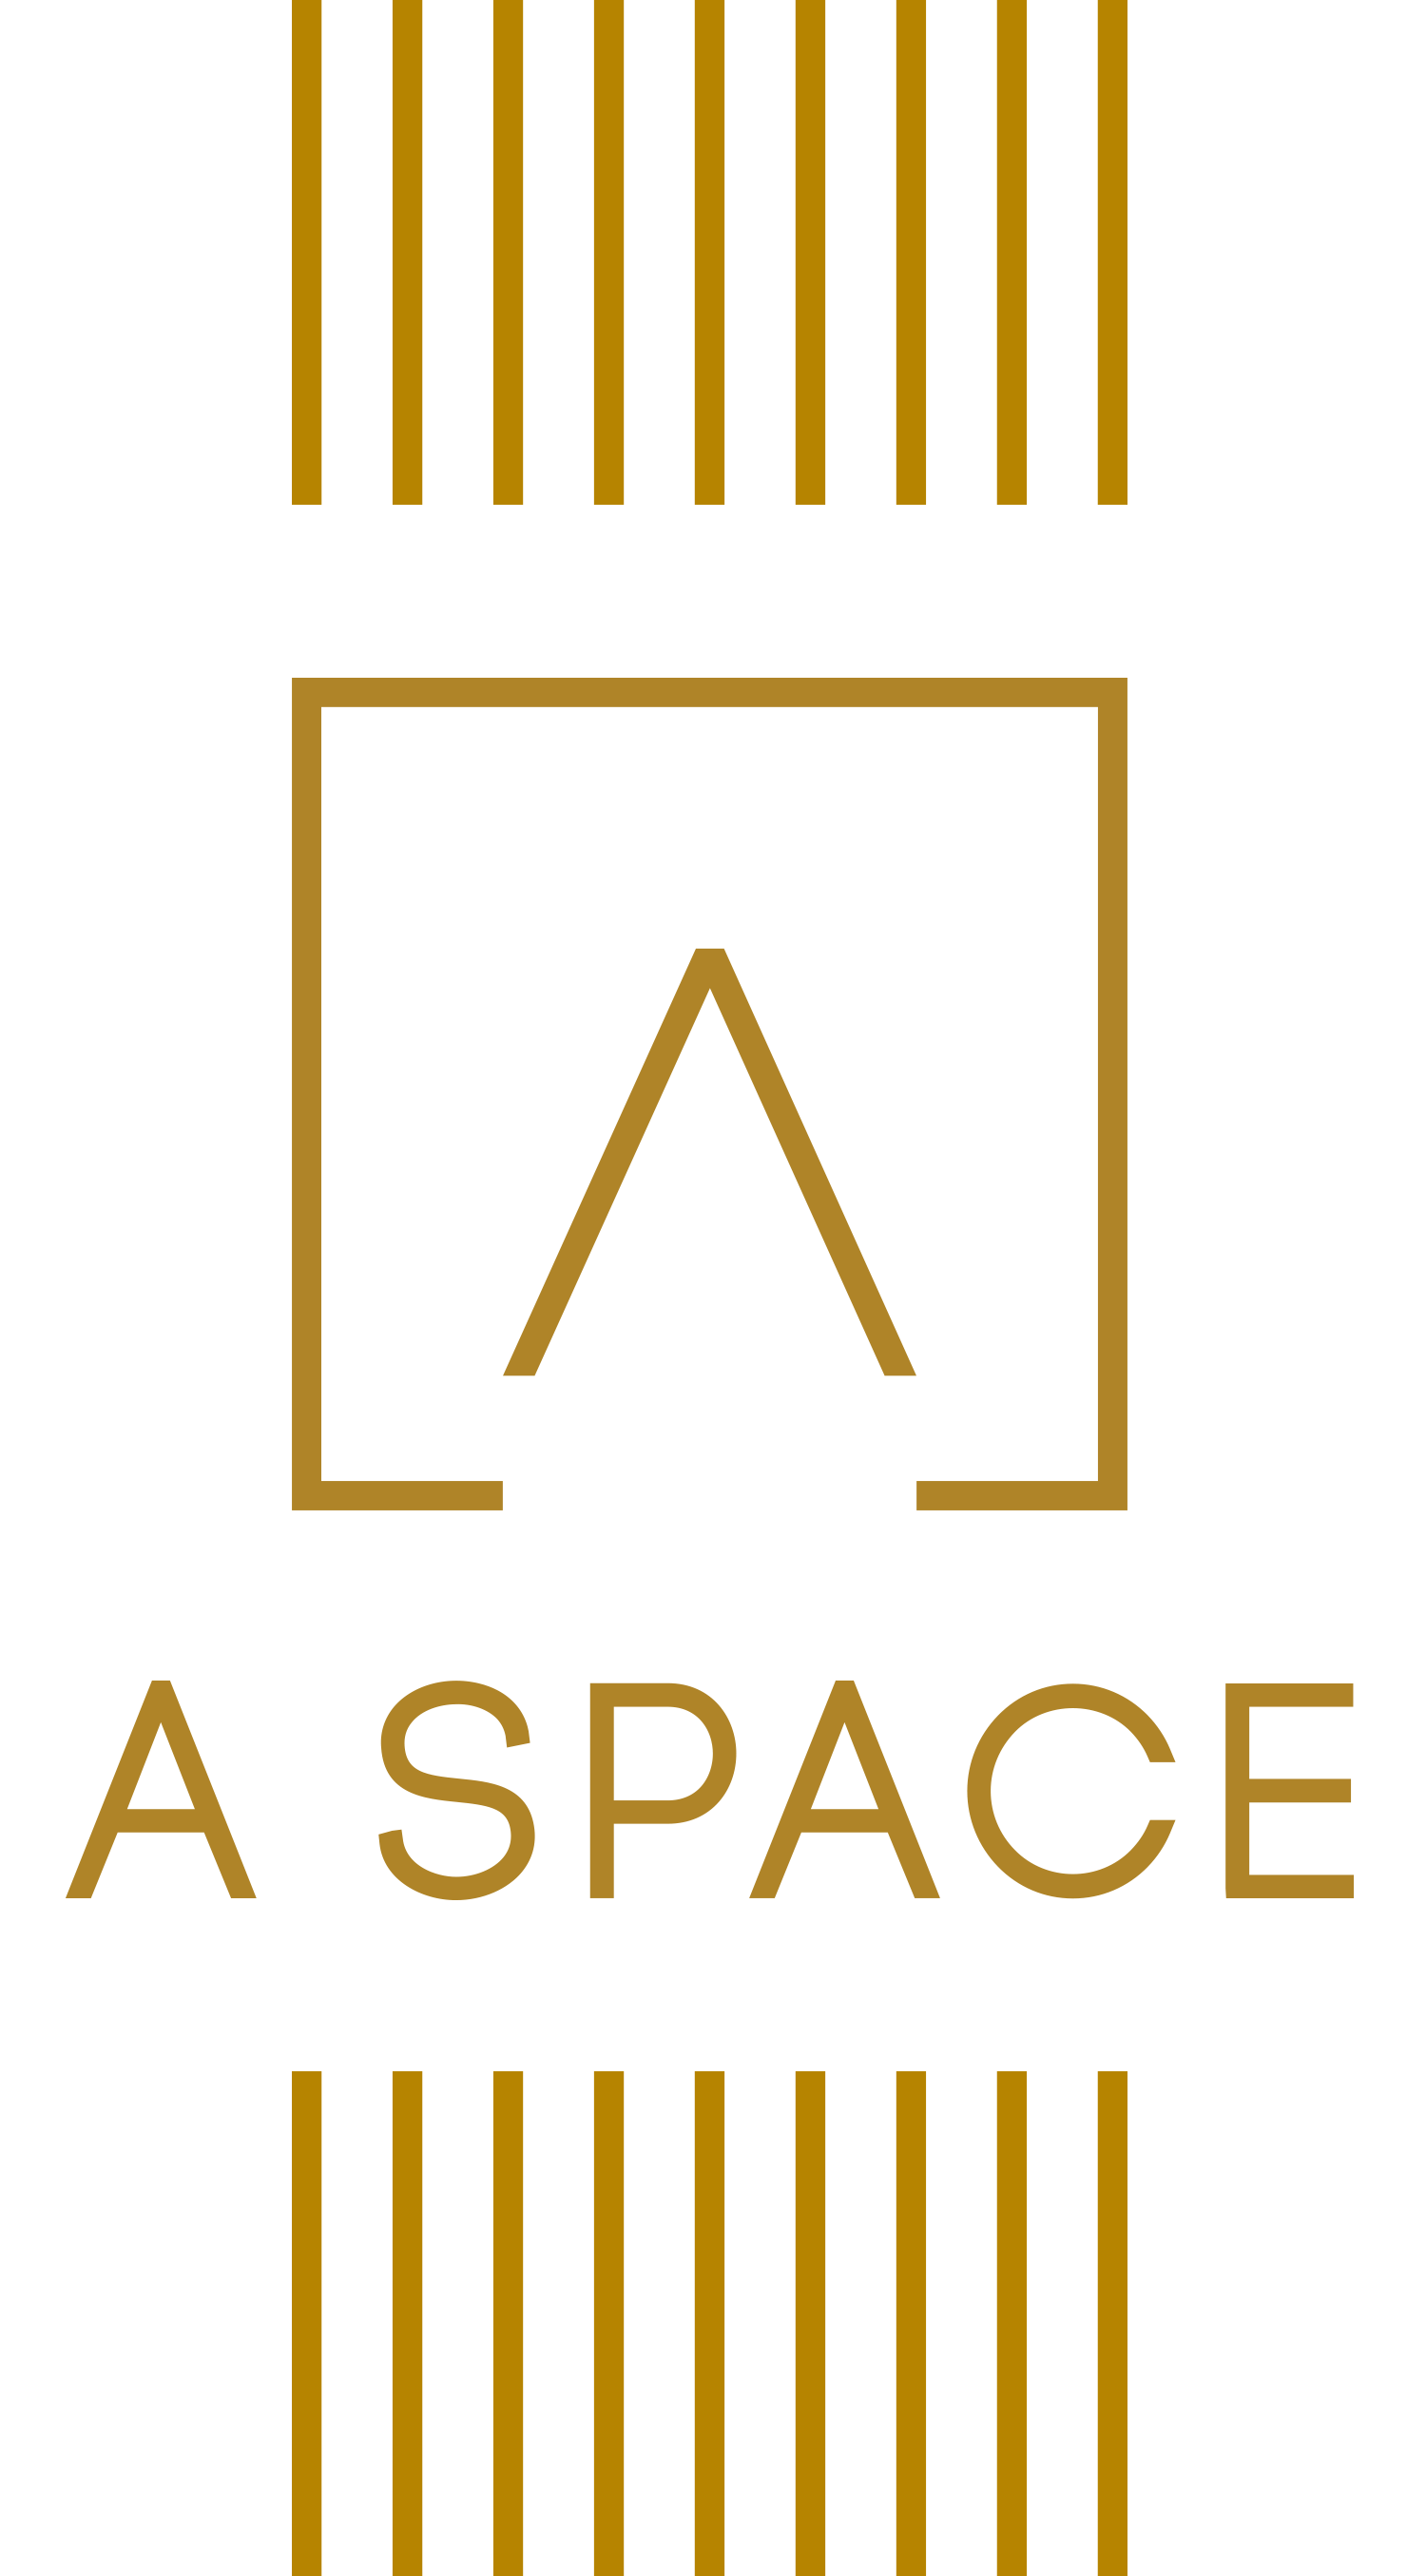 A Space Development